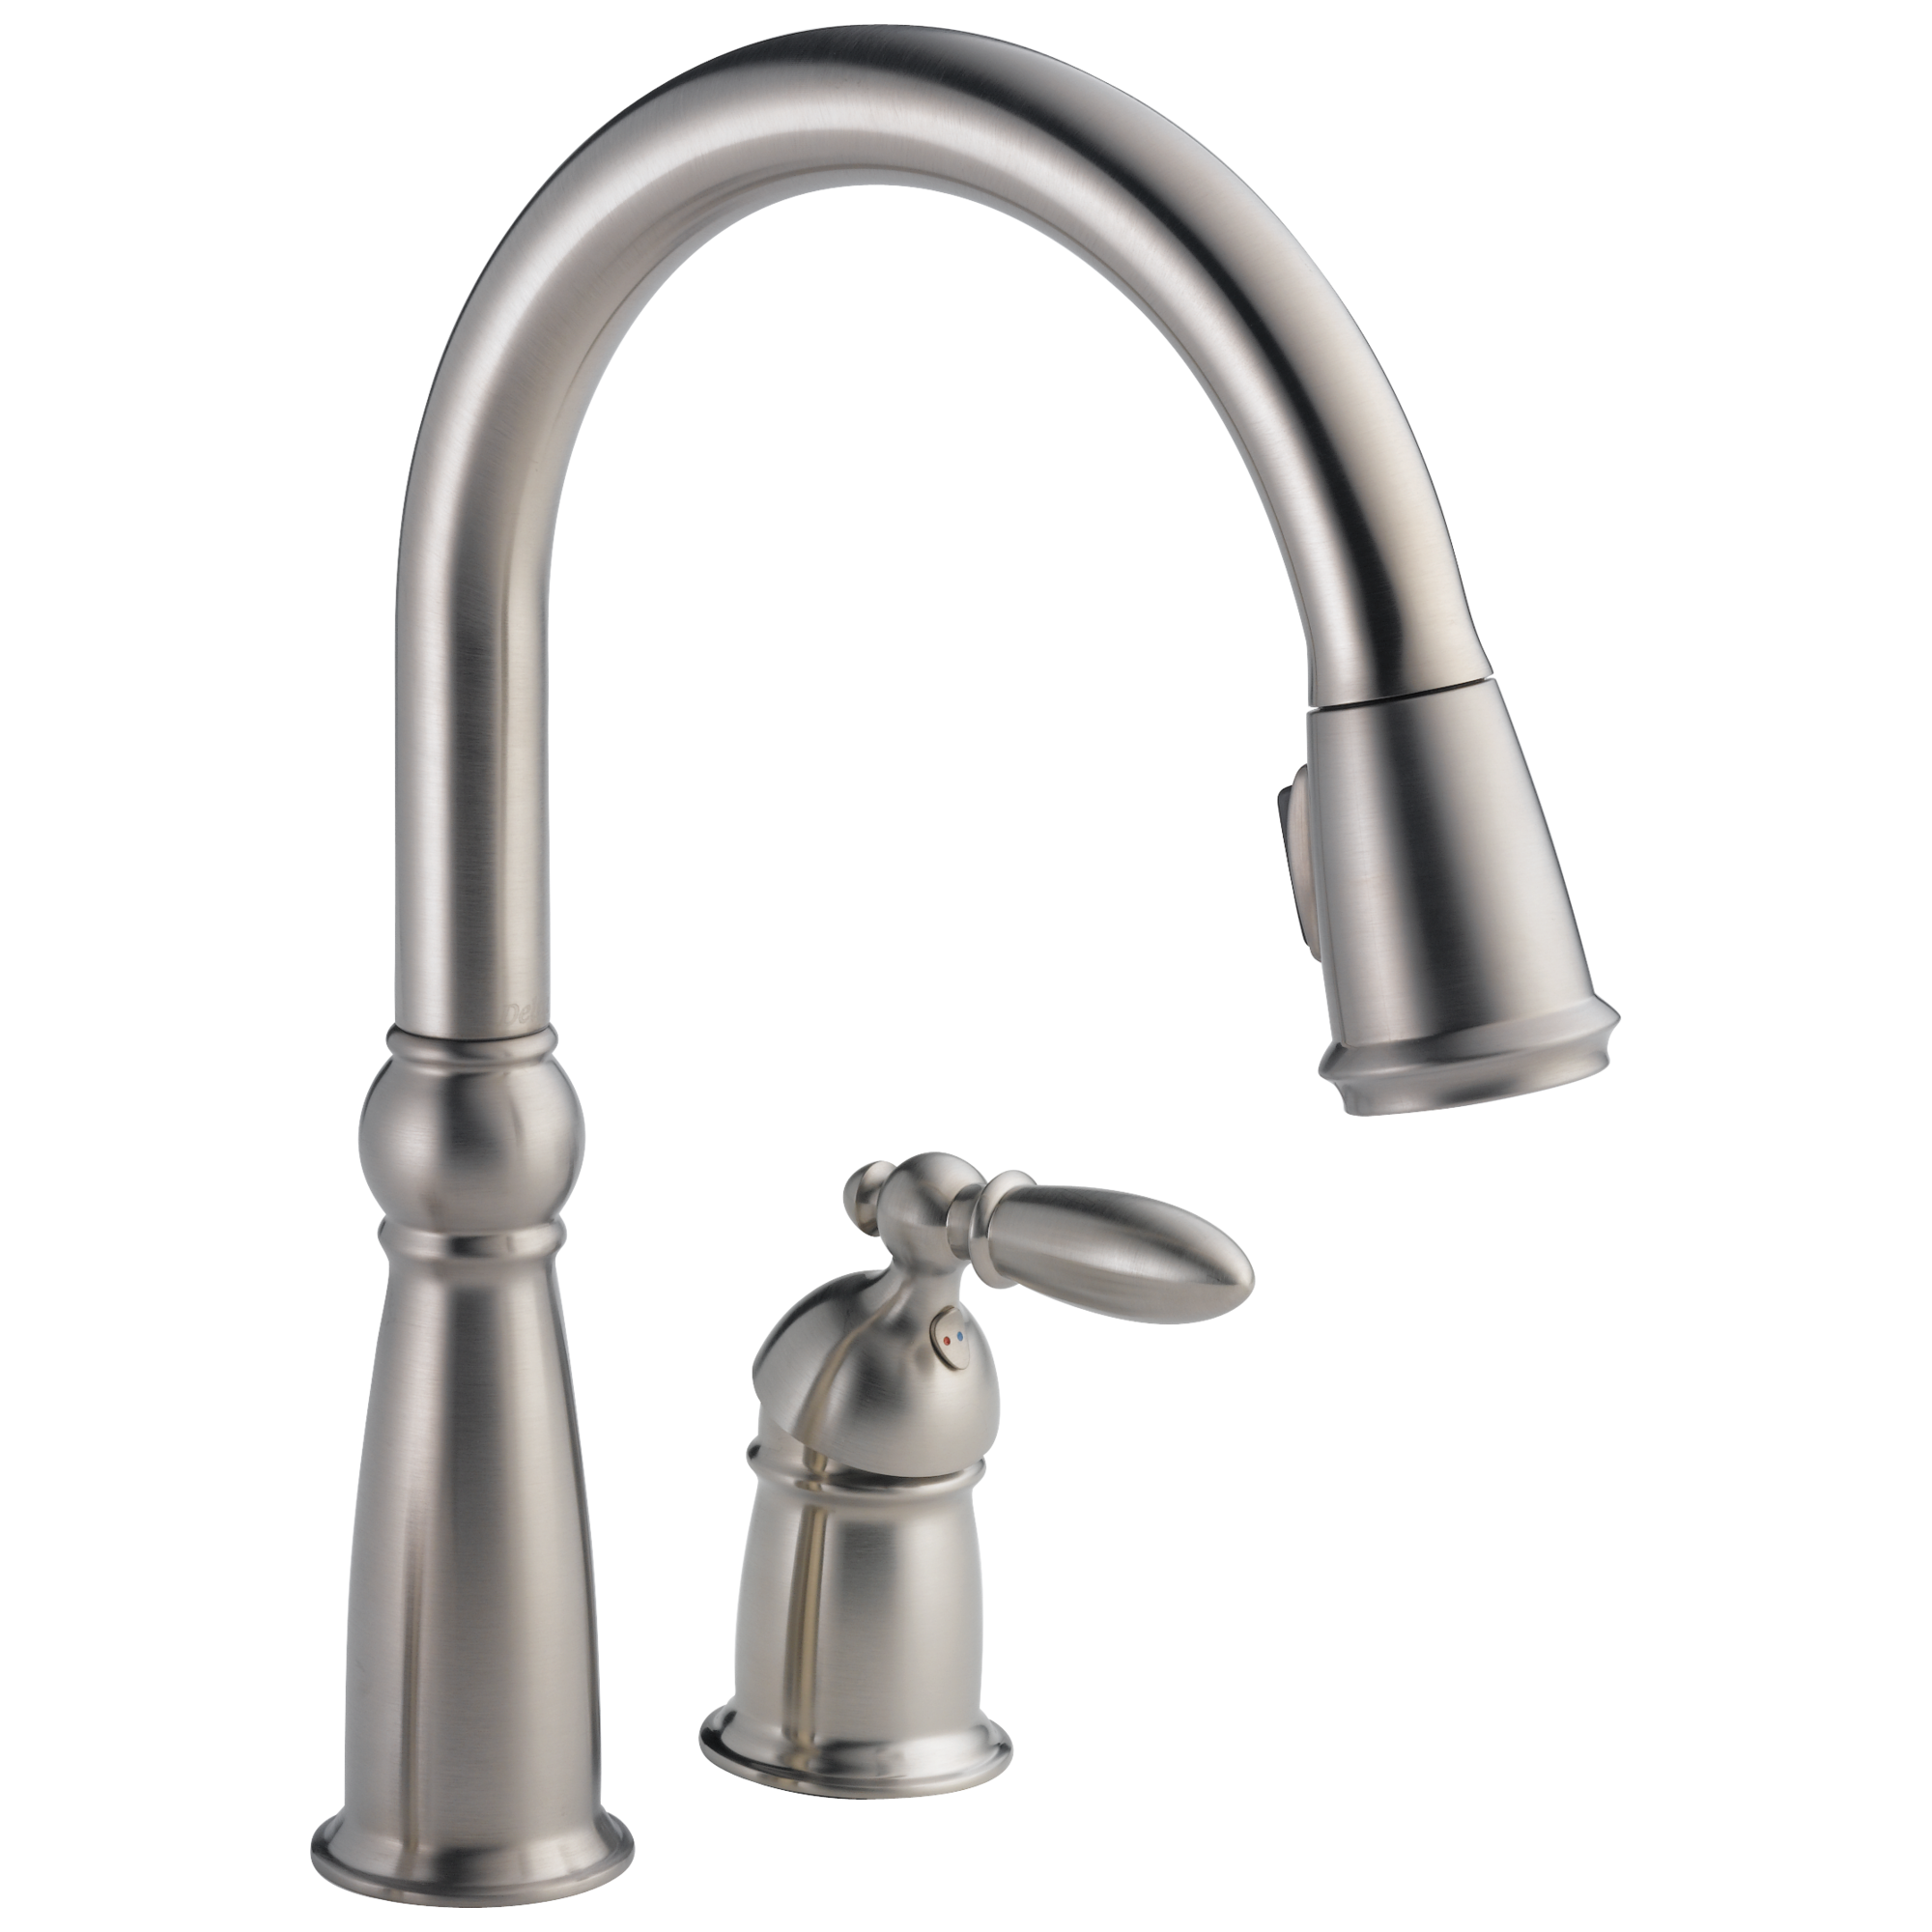 Delta-955-SS-DST Victorian, Single Handle Pull-Down Kitchen Faucet, Stainless